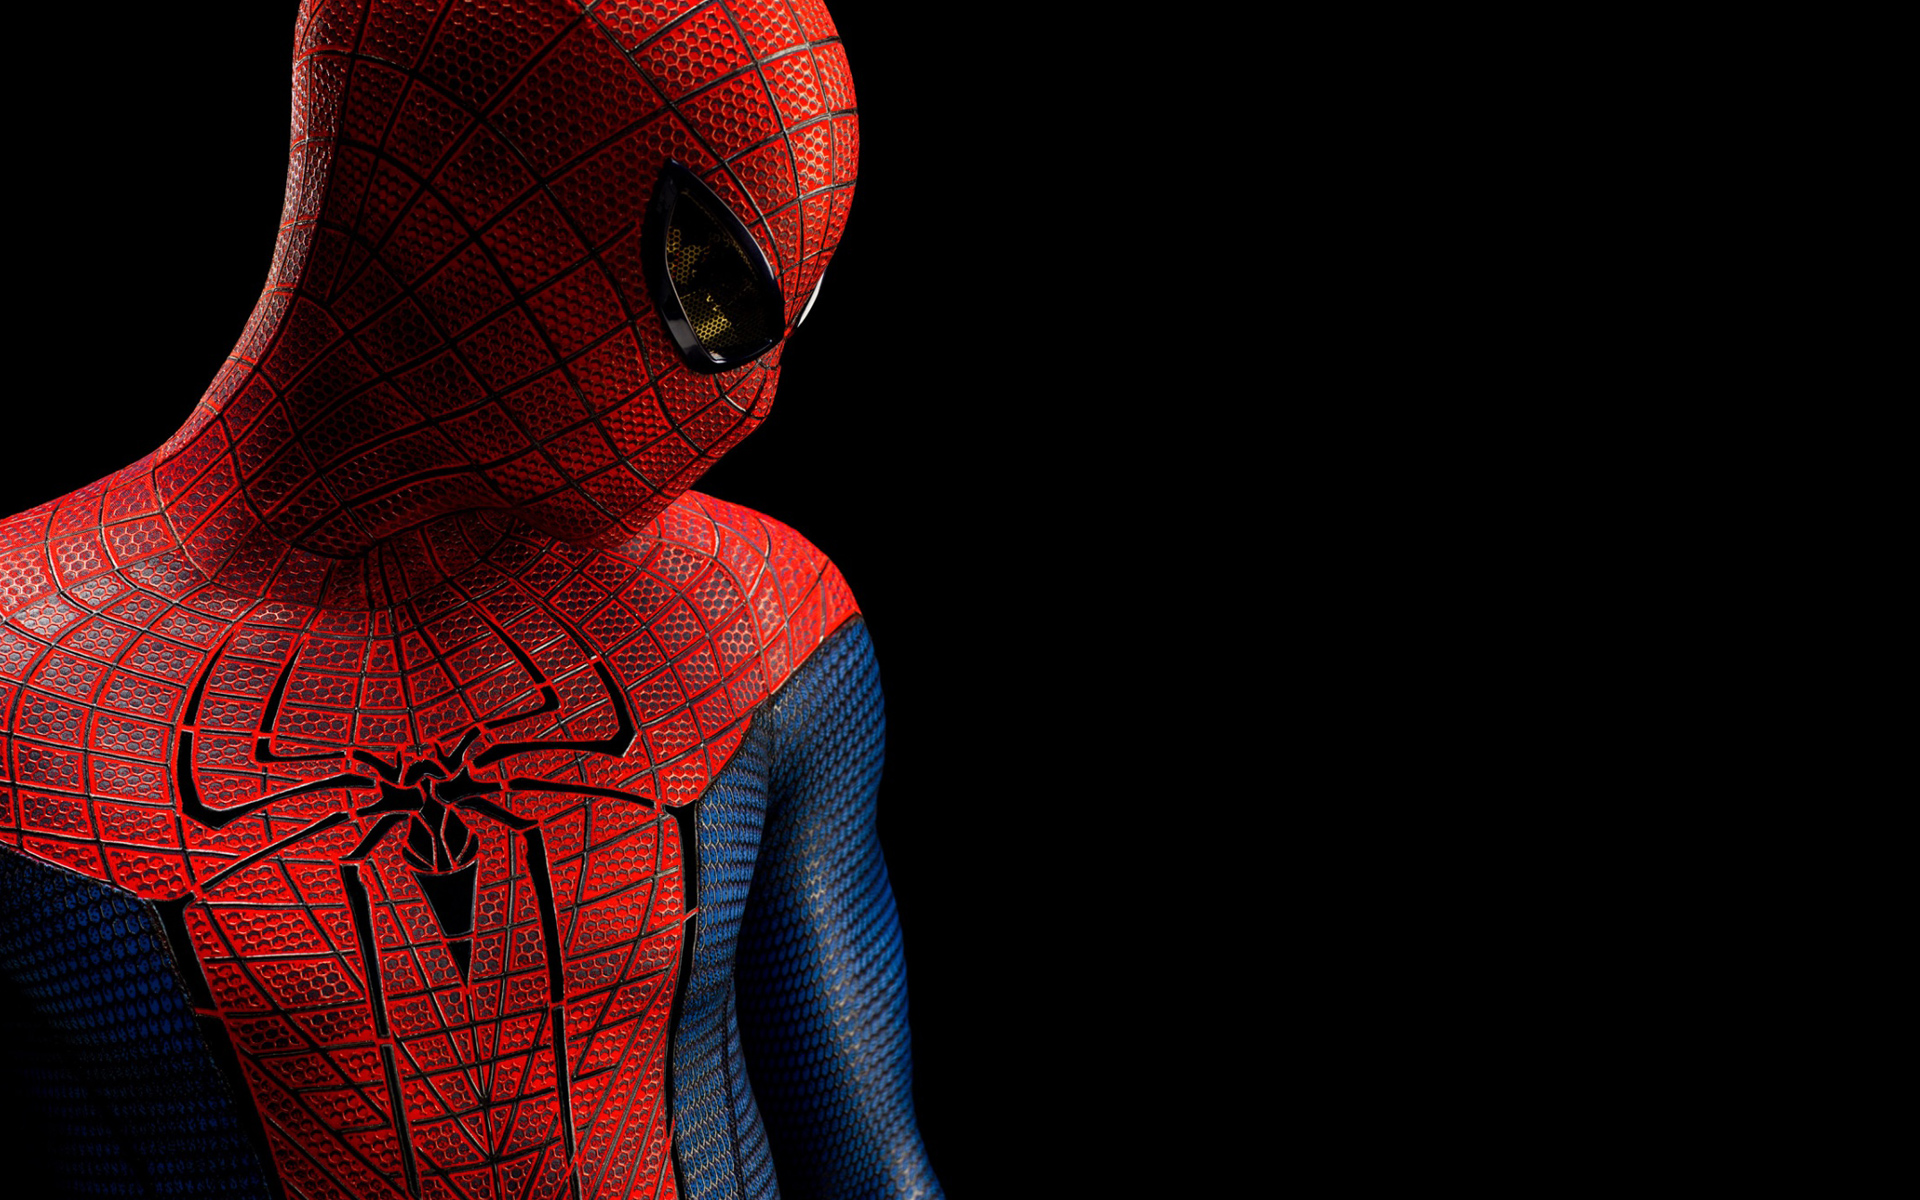 The Amazing Spider Man  Wallpaper Hd p  HD Wallpapers 1920x1200